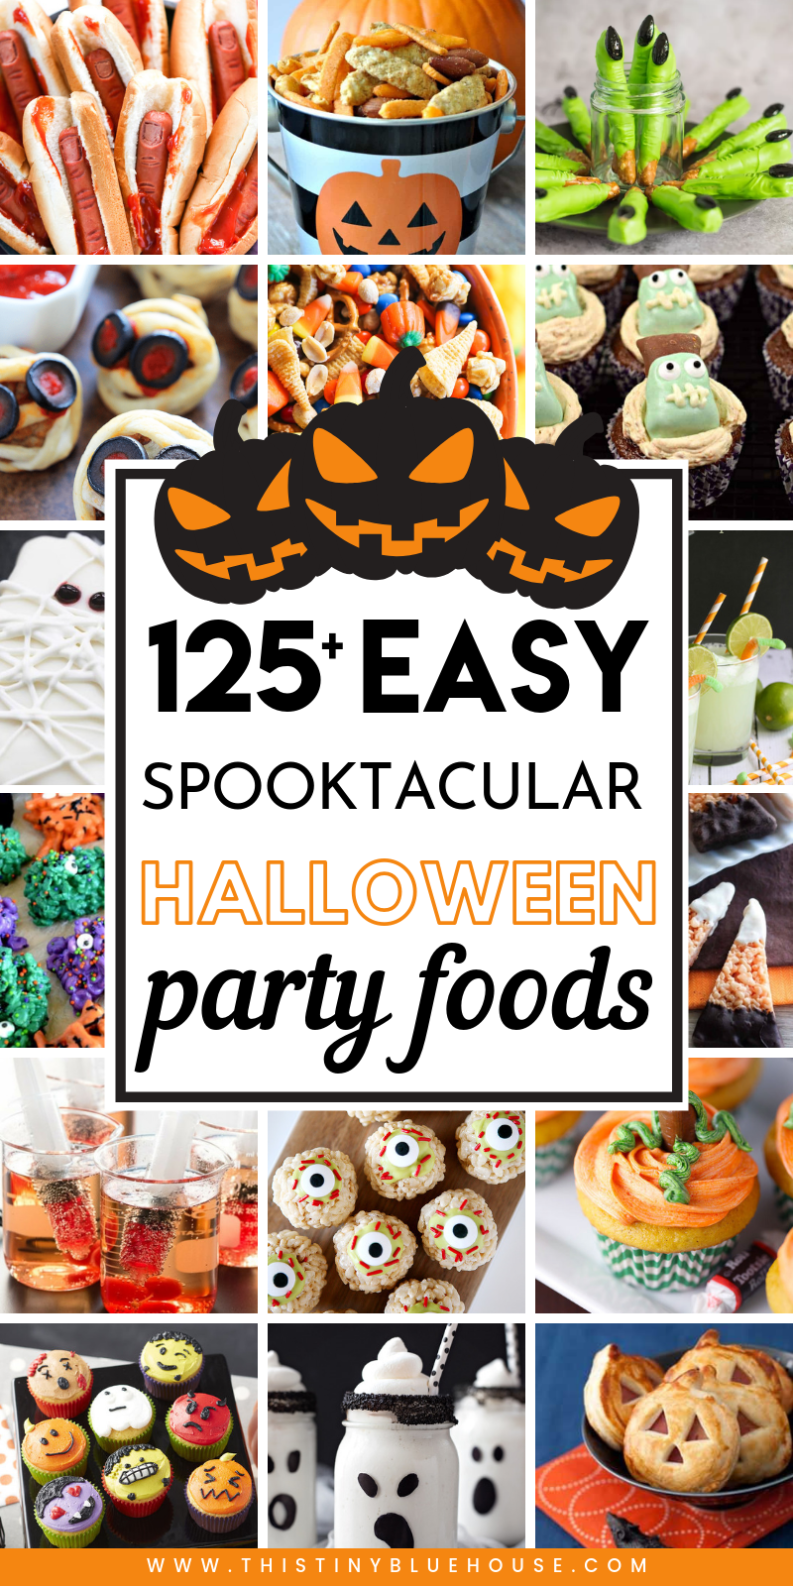 100+ Best Ultimate Halloween Party Food Ideas (With images